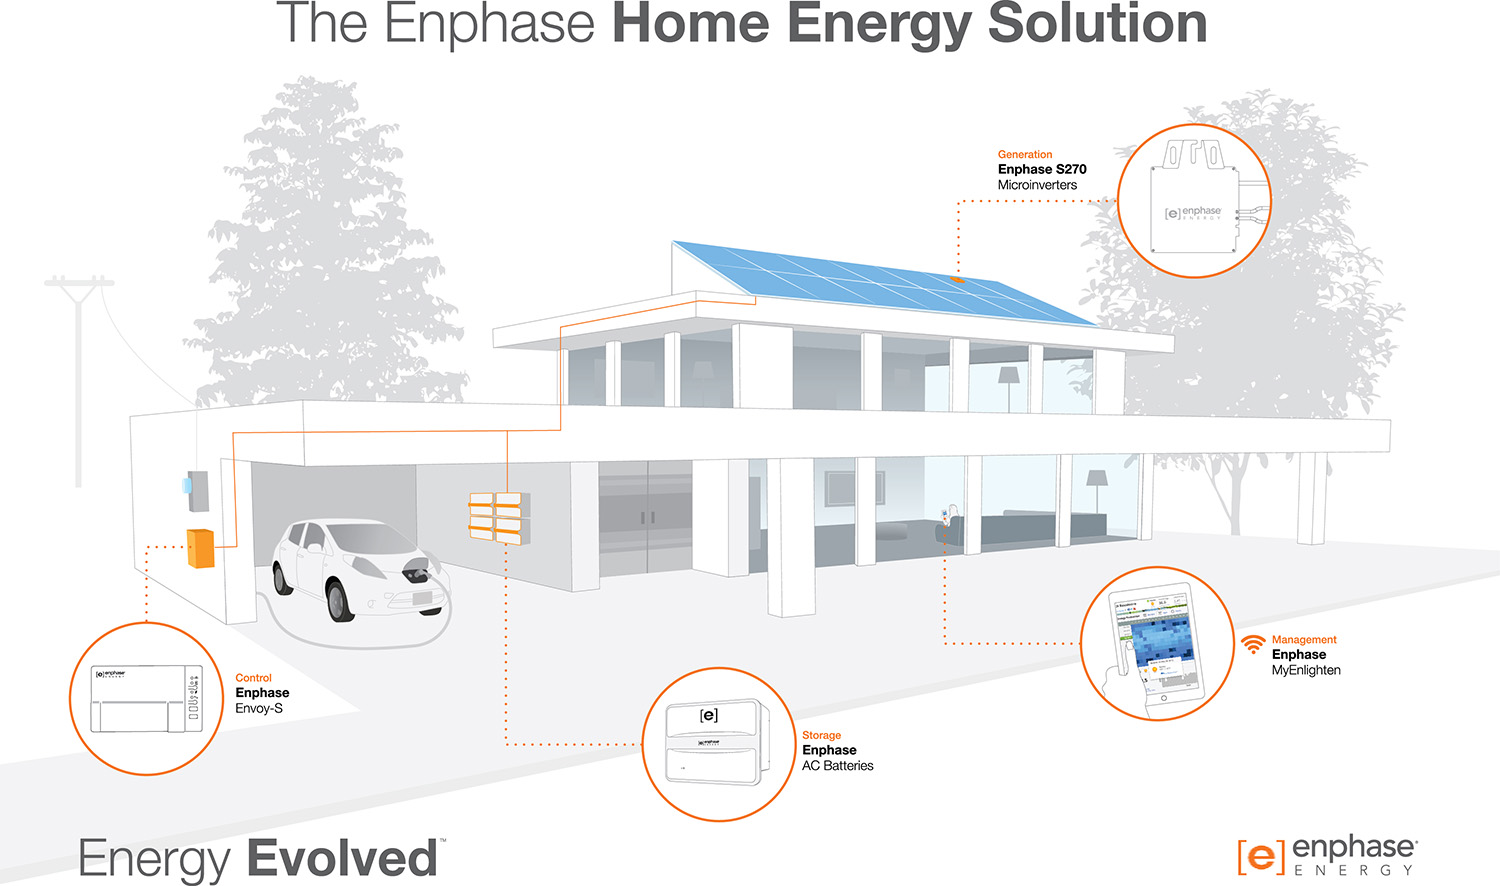 The Enphase Energy Home Energy Solution is a modular, integrated energy storage system that combines solar generation, energy control, and energy storage